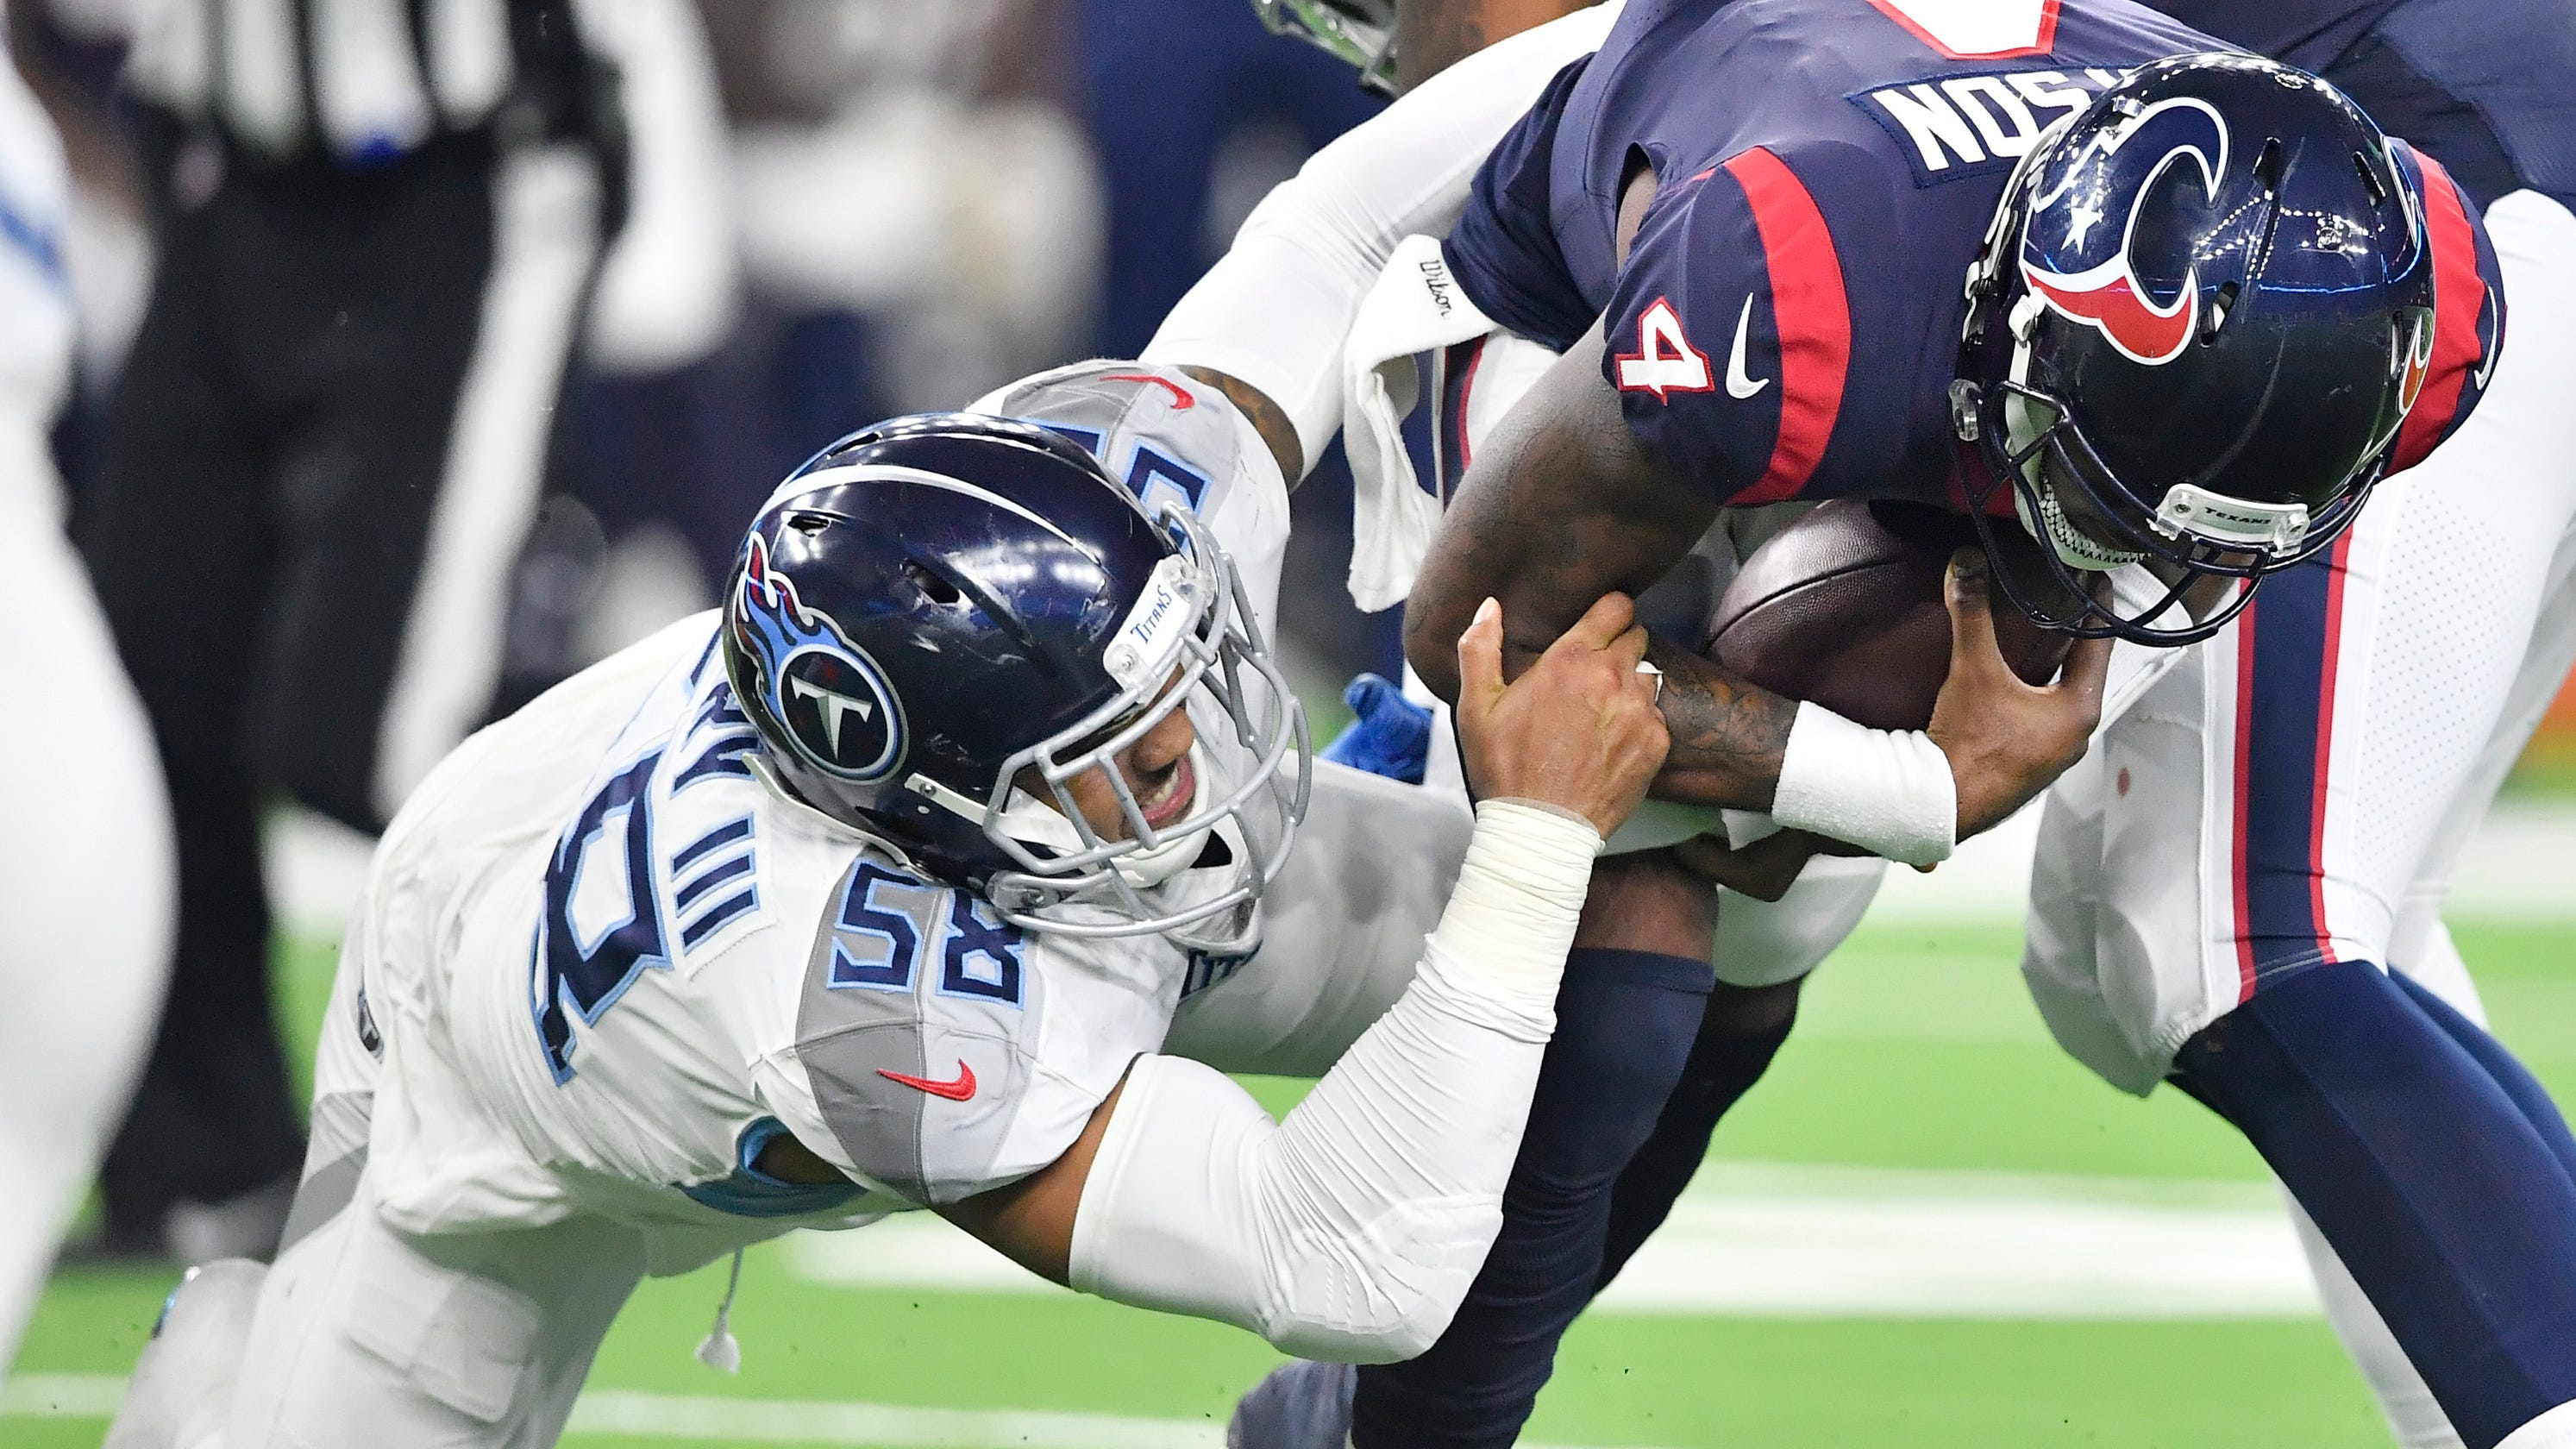 Titans vs. Texans: Keys to victory for Week 6